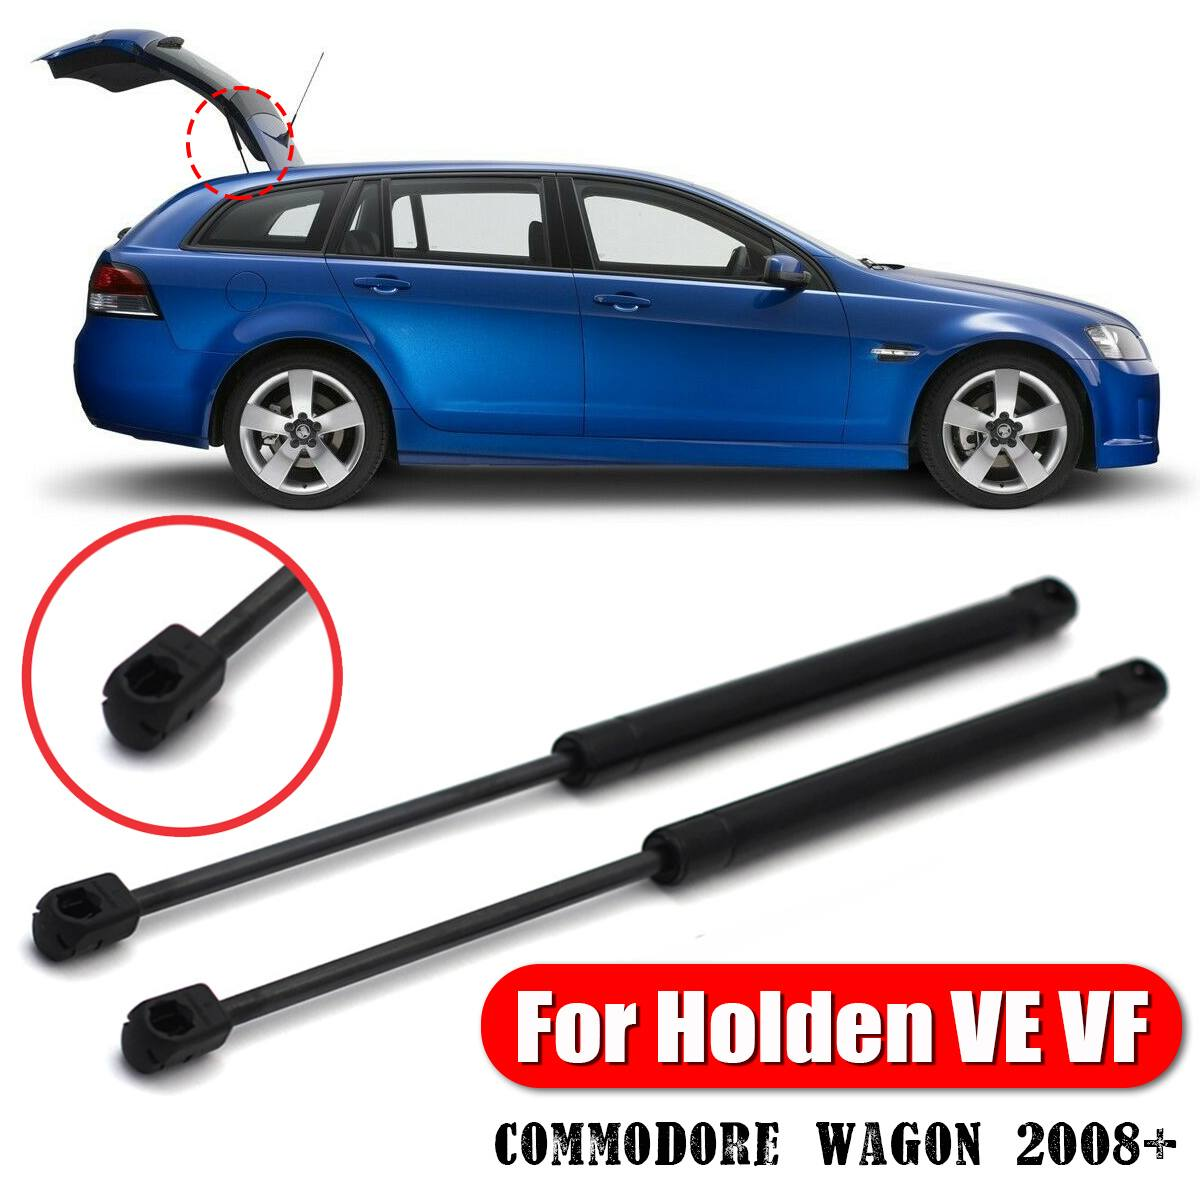 2Pcs Apoio Elevador de Gás Bagageira Bota Struts bar Traseira Do Carro Para Holden VE Commodore VF Wagon 2008 +